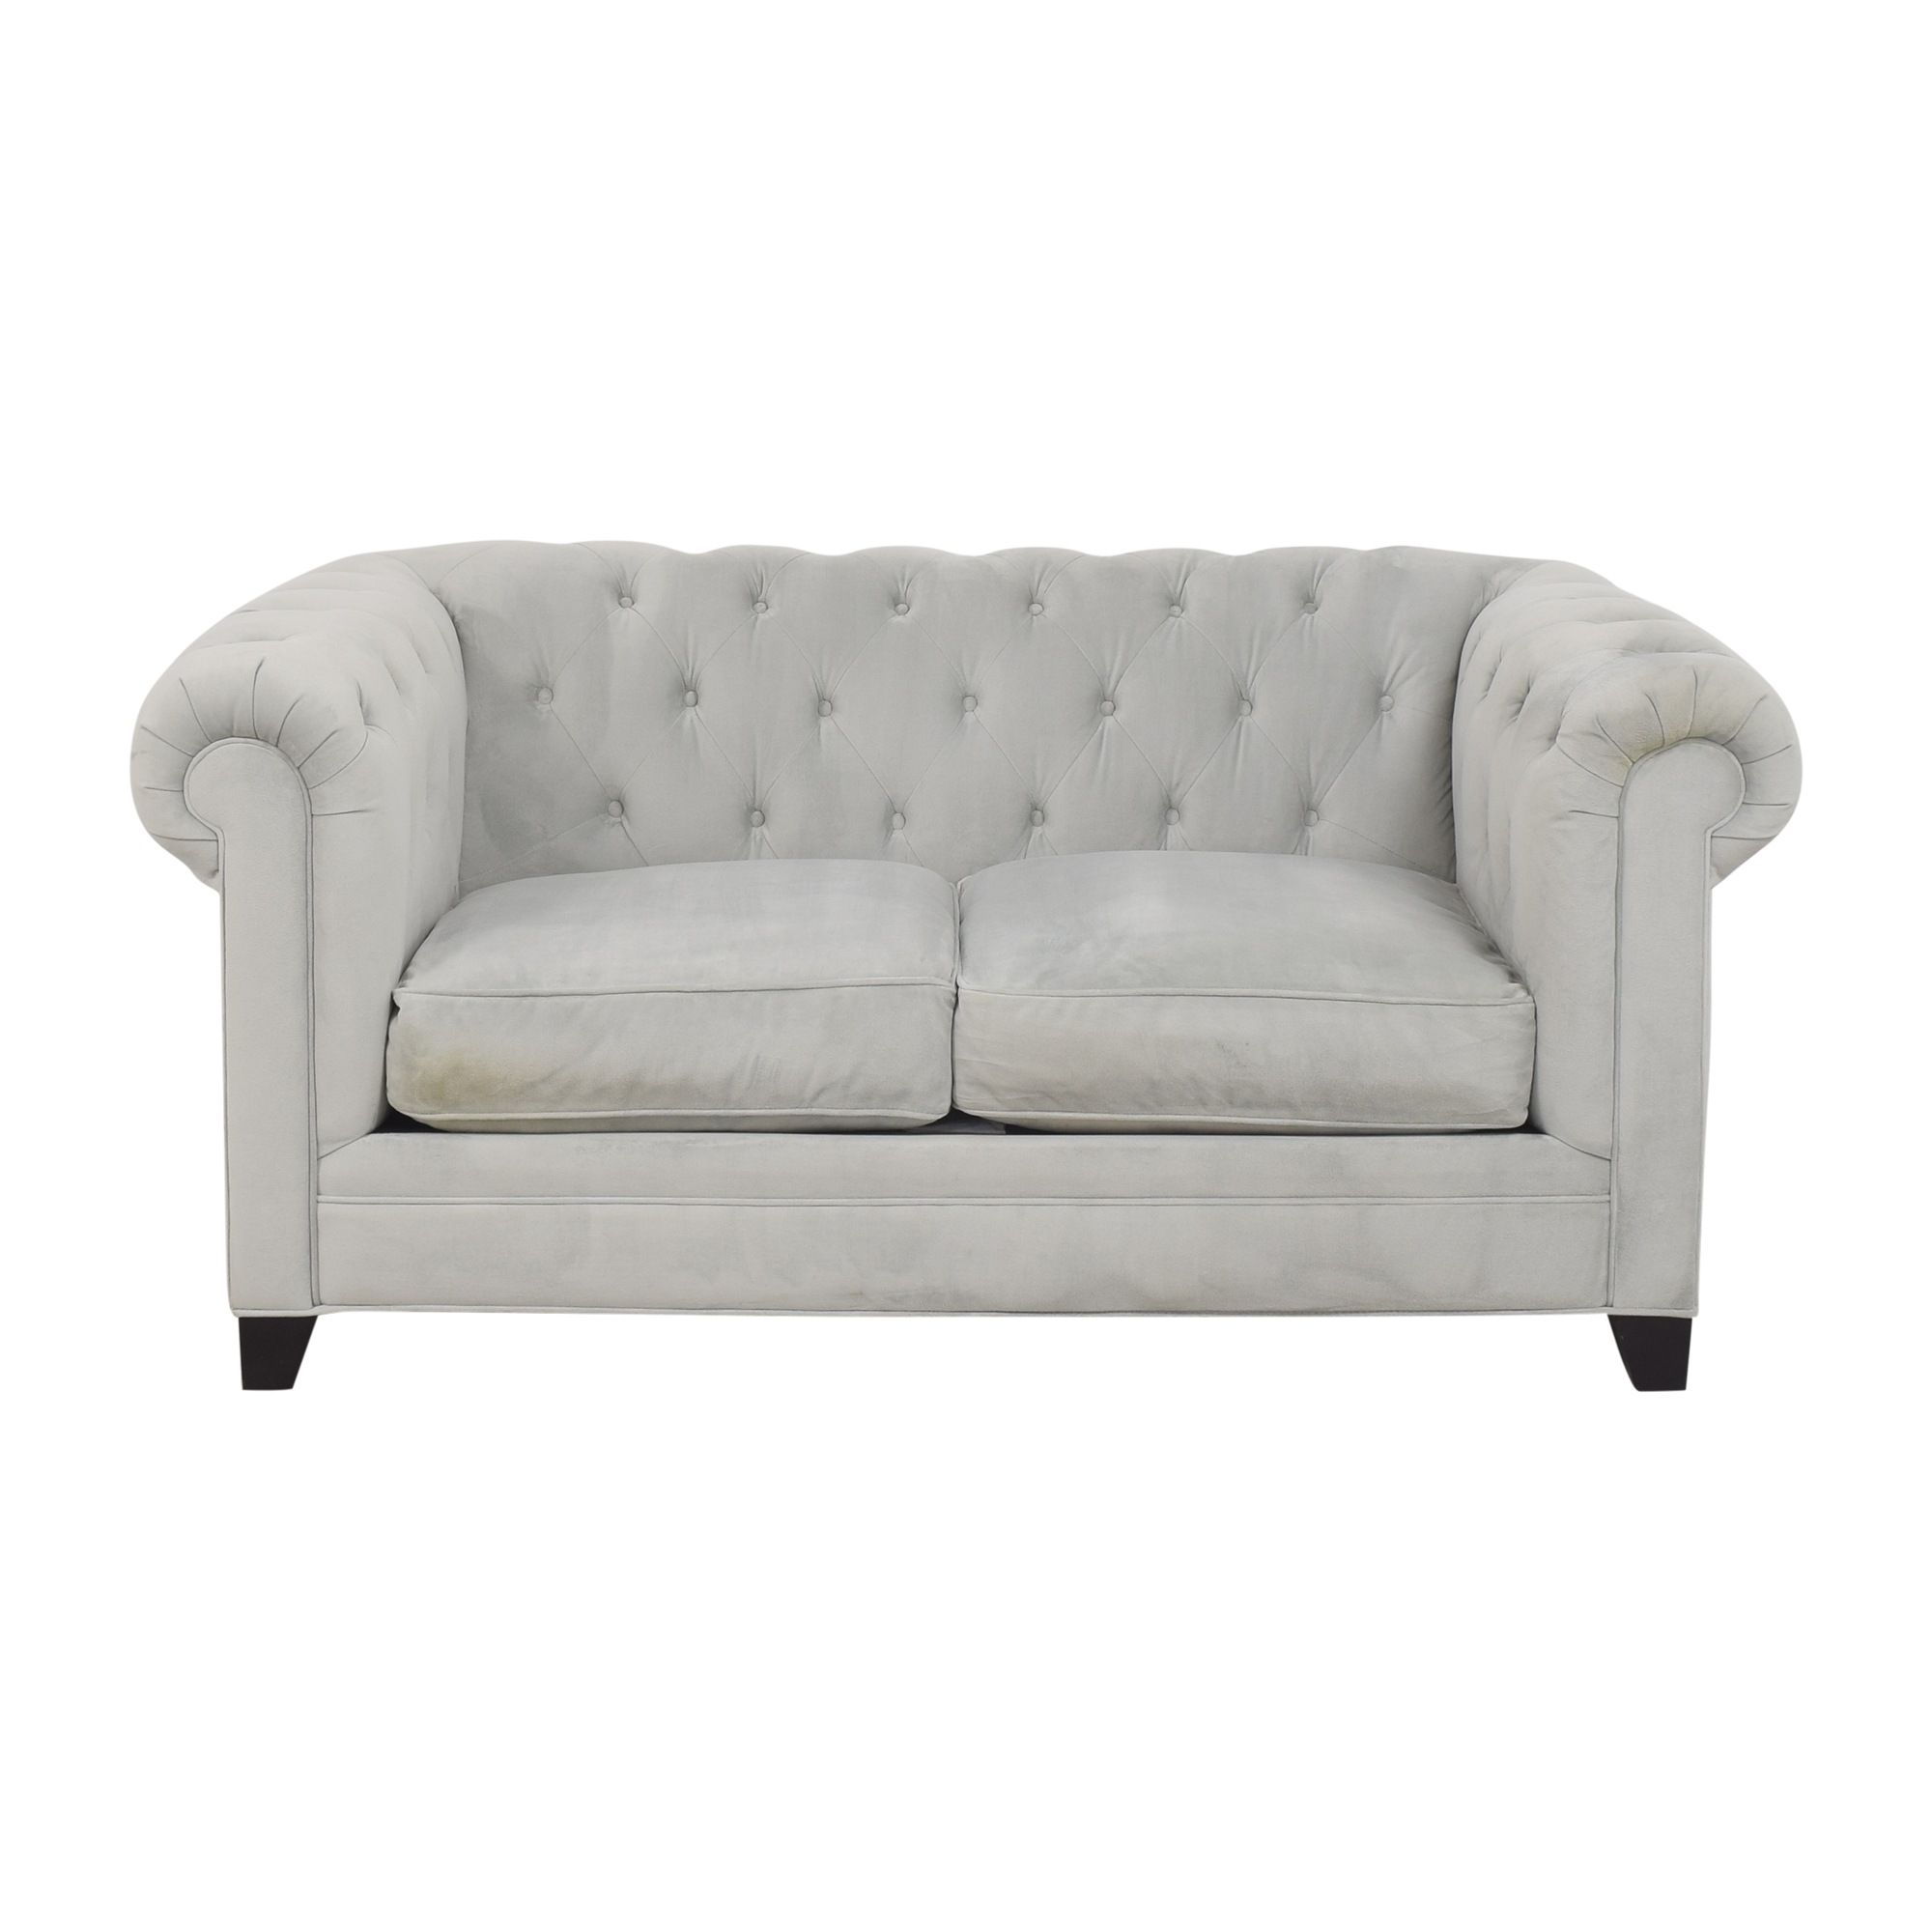 Macy's Macy's Martha Stewart Collection Saybridge Loveseat dimensions